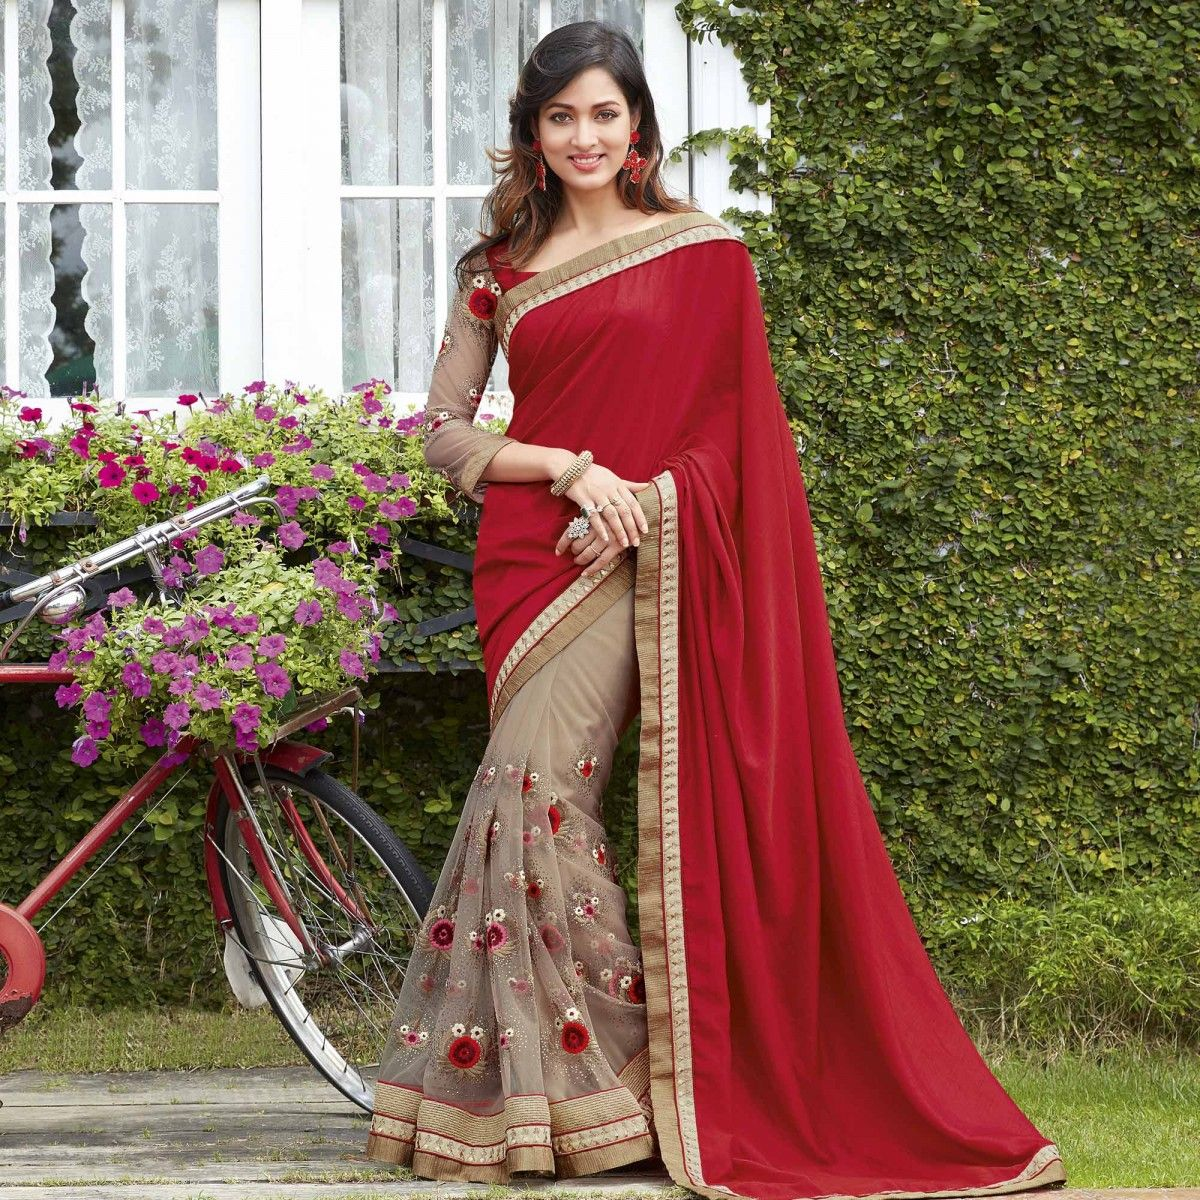 Buy Red Beige Embroidered Work Half Saree For Womens Online India Best Prices Reviews Peachmode Saree Models Half Saree Designs Half Saree